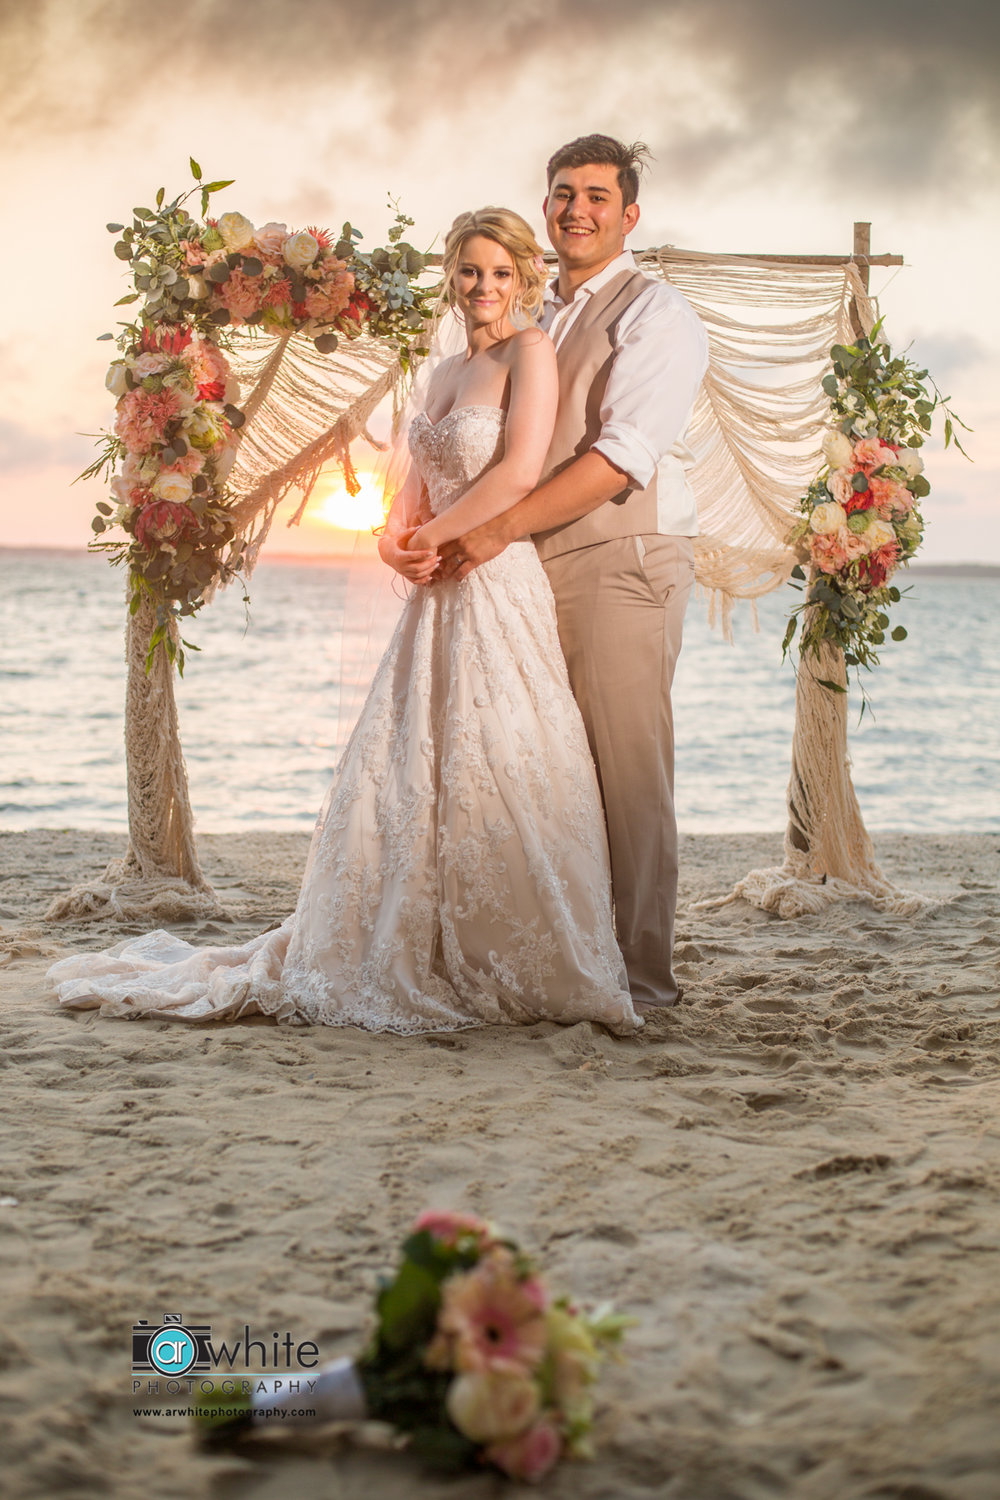 A young bride and groom pose for a photograph after their sunset wedding in Oc Maryland.